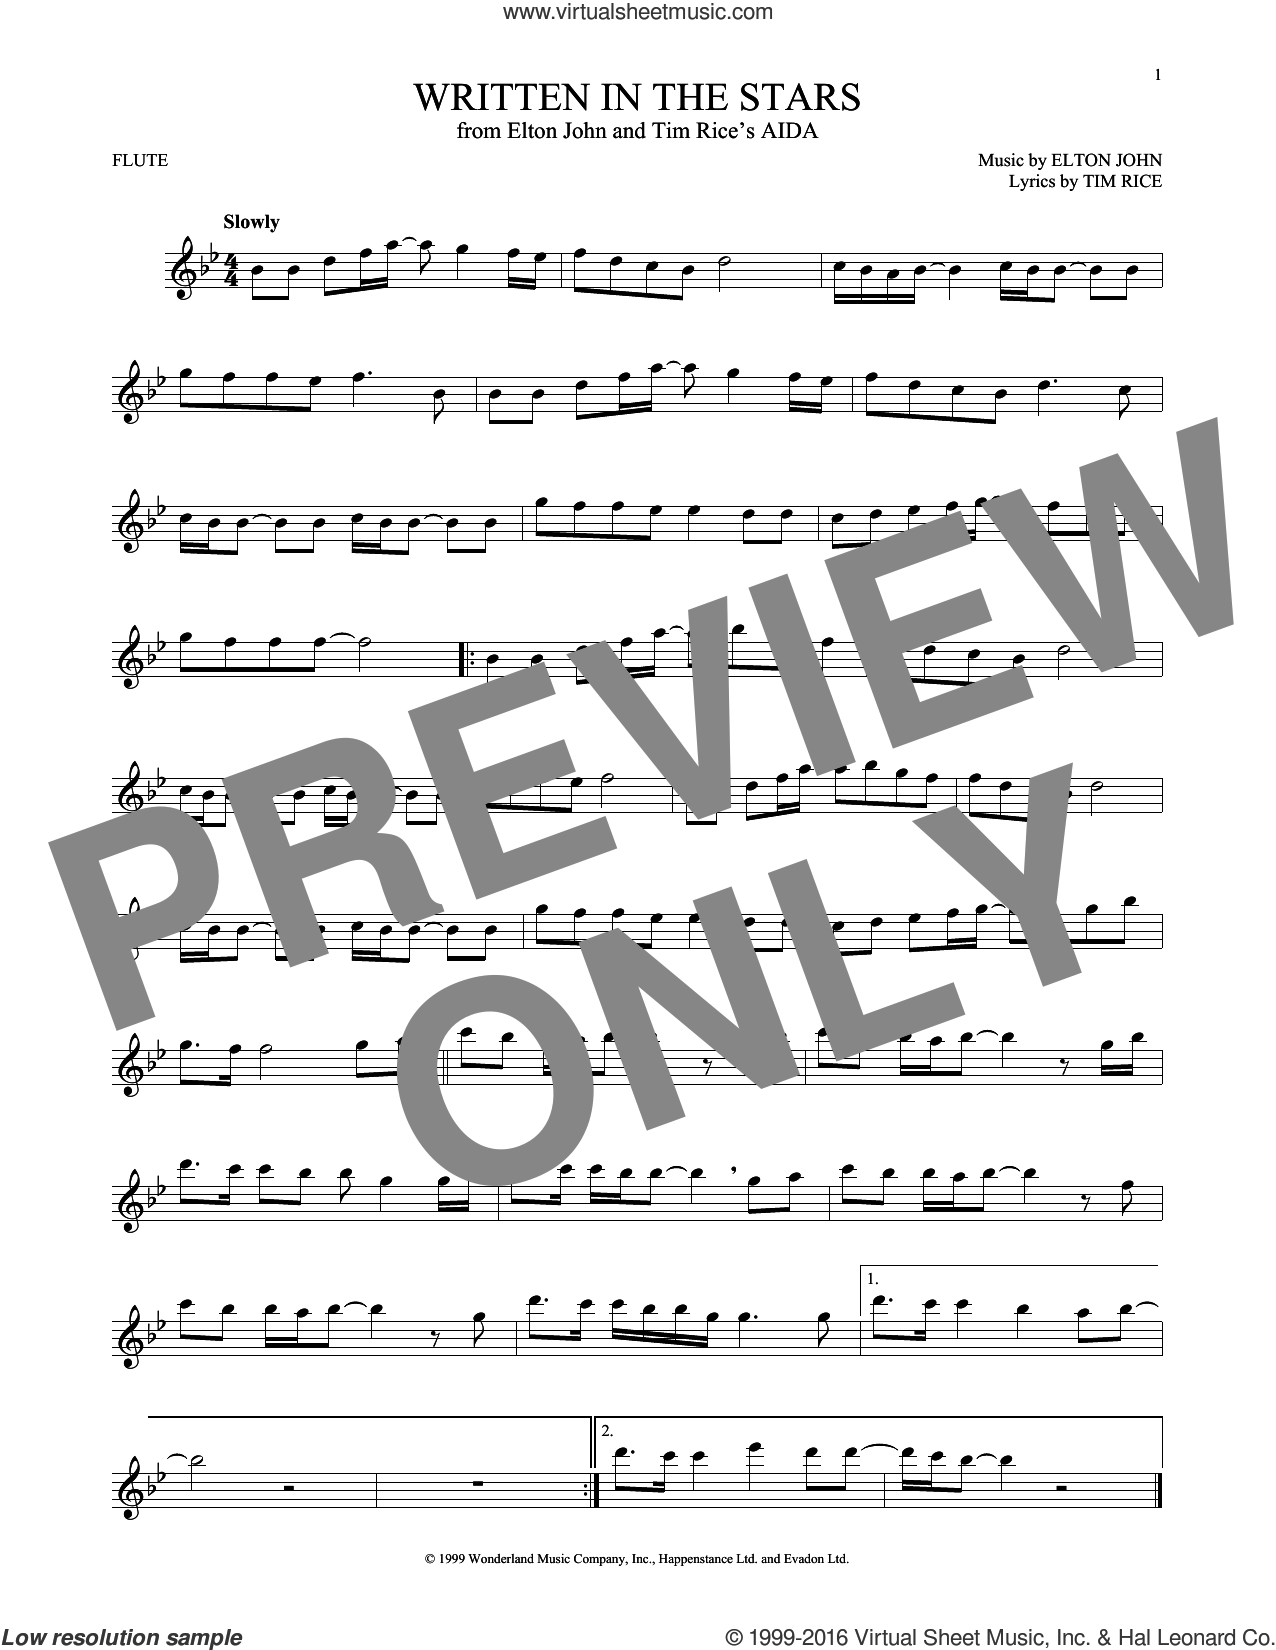 Written In The Stars sheet music for flute solo by Elton John and Tim Rice, intermediate skill level